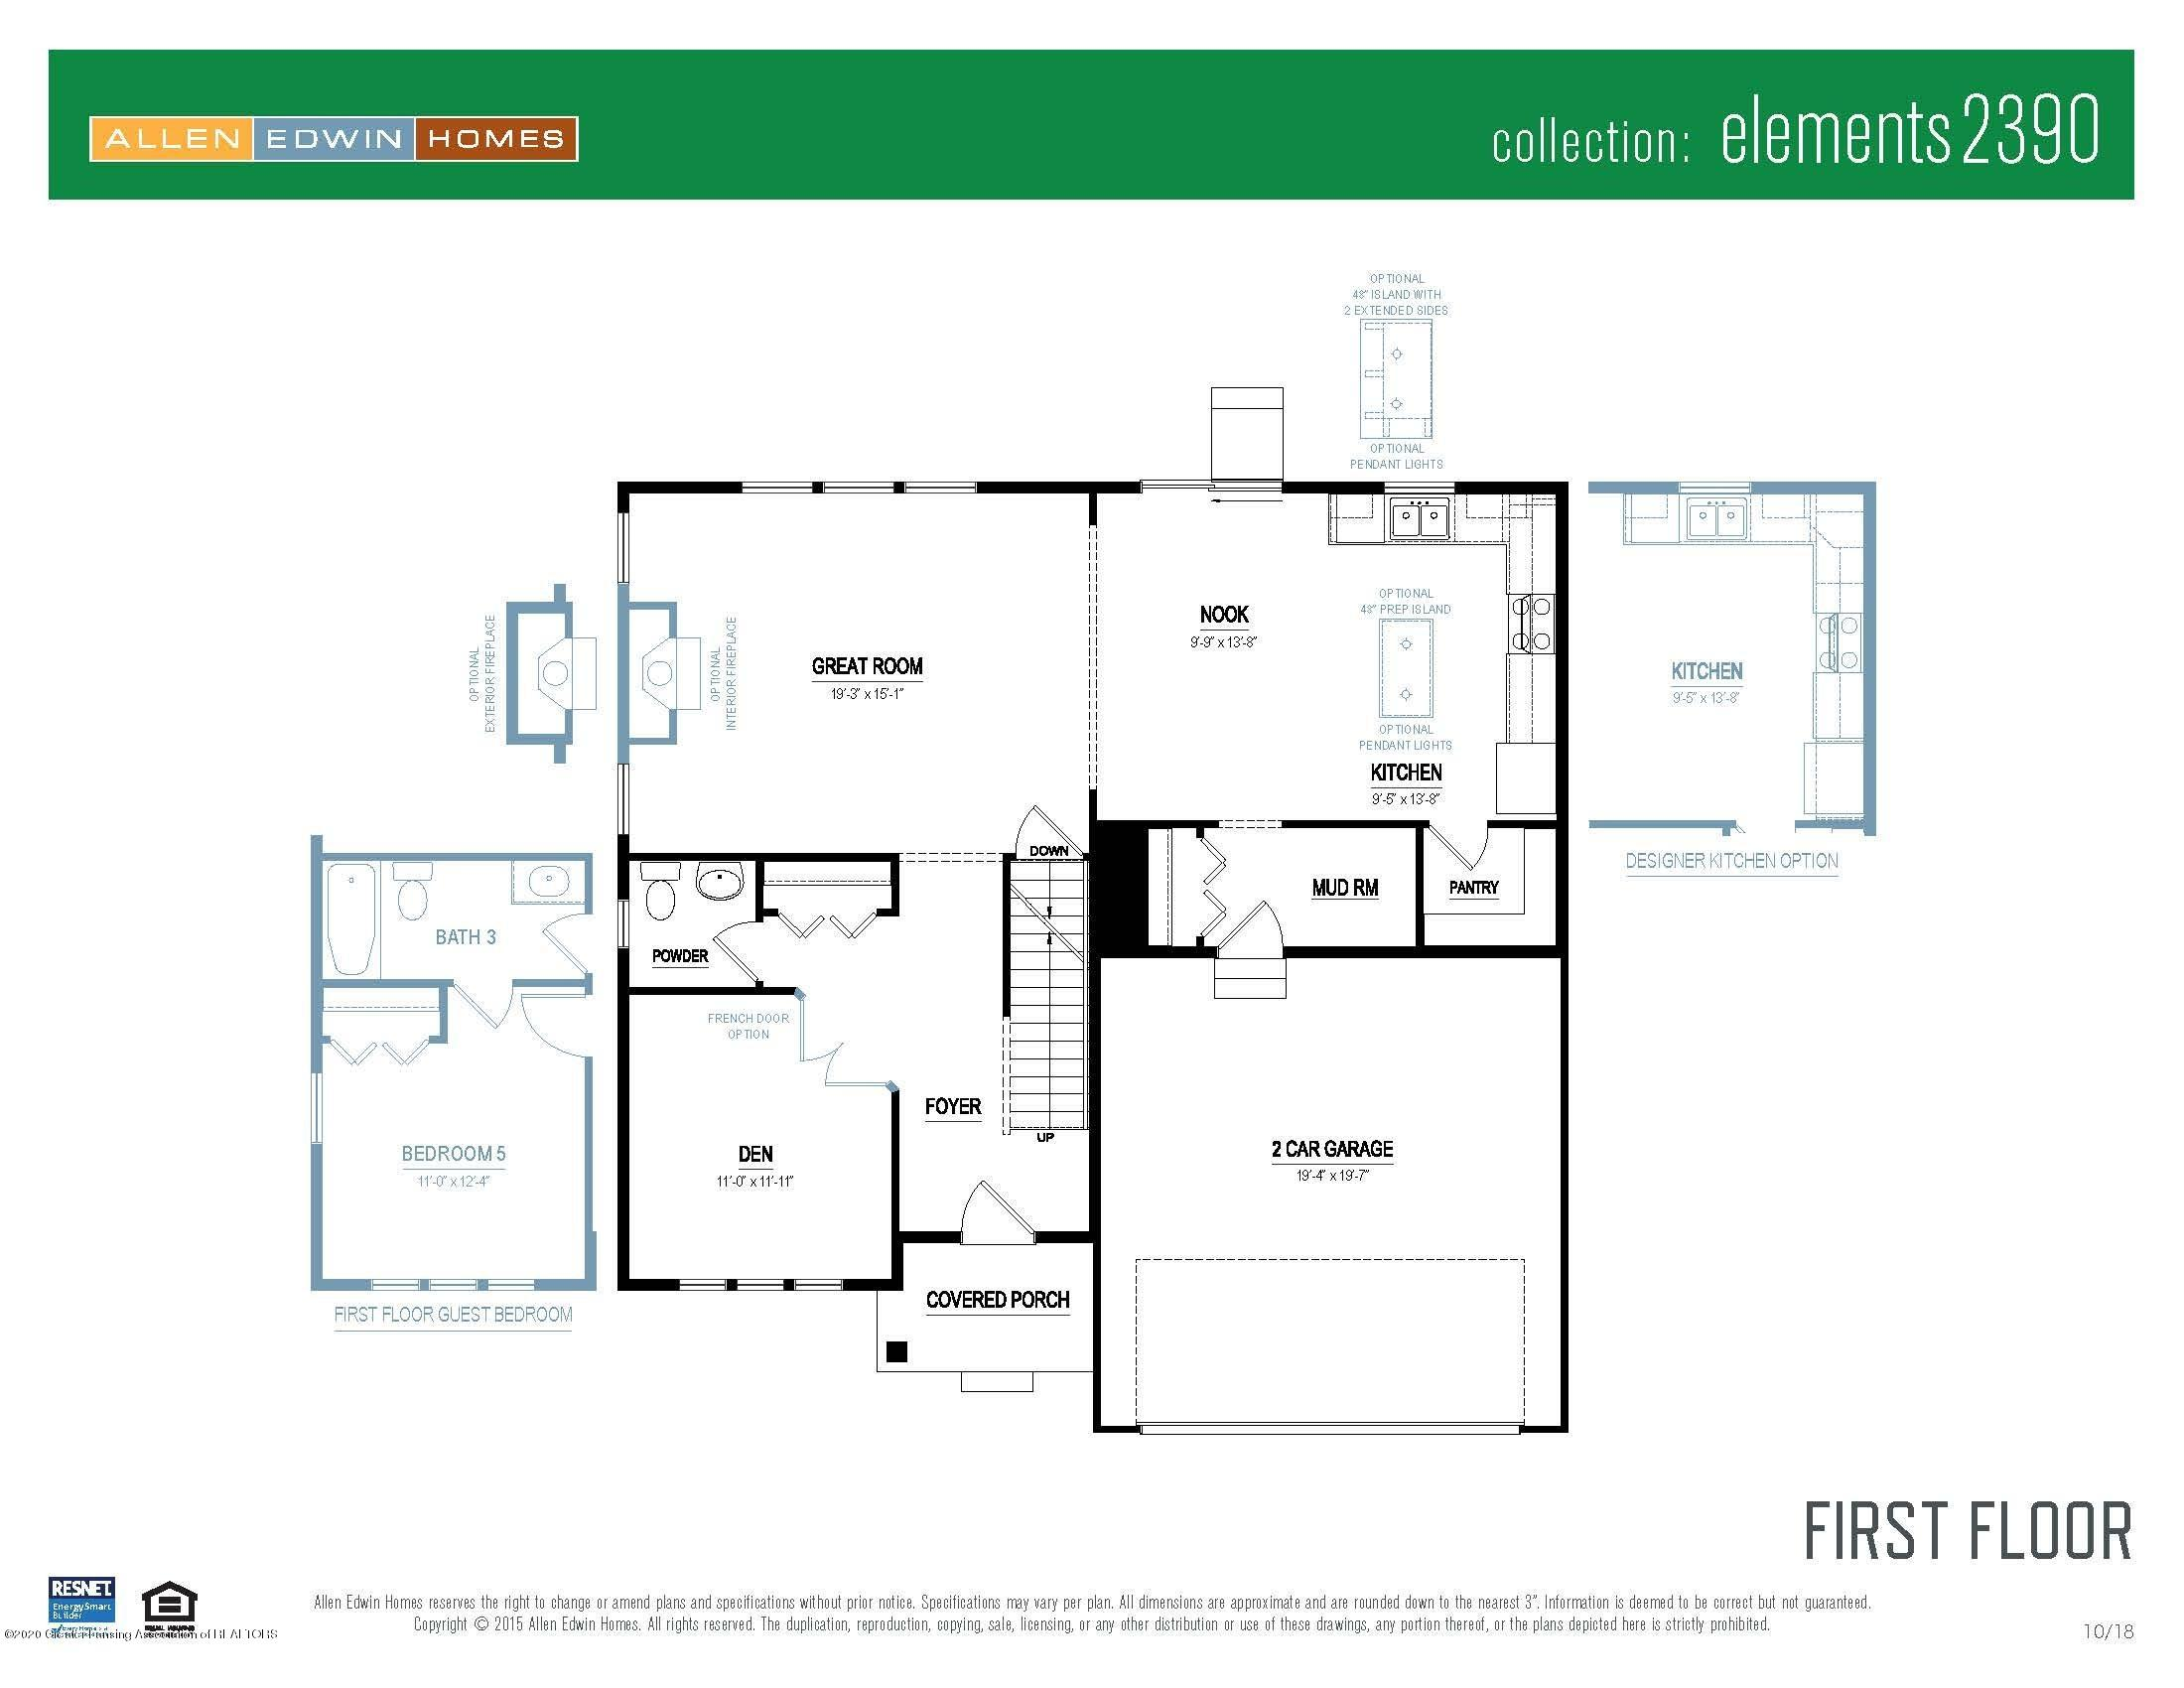 6472 Firefly Dr - Elements 2390 V8.0a First Floor - 20